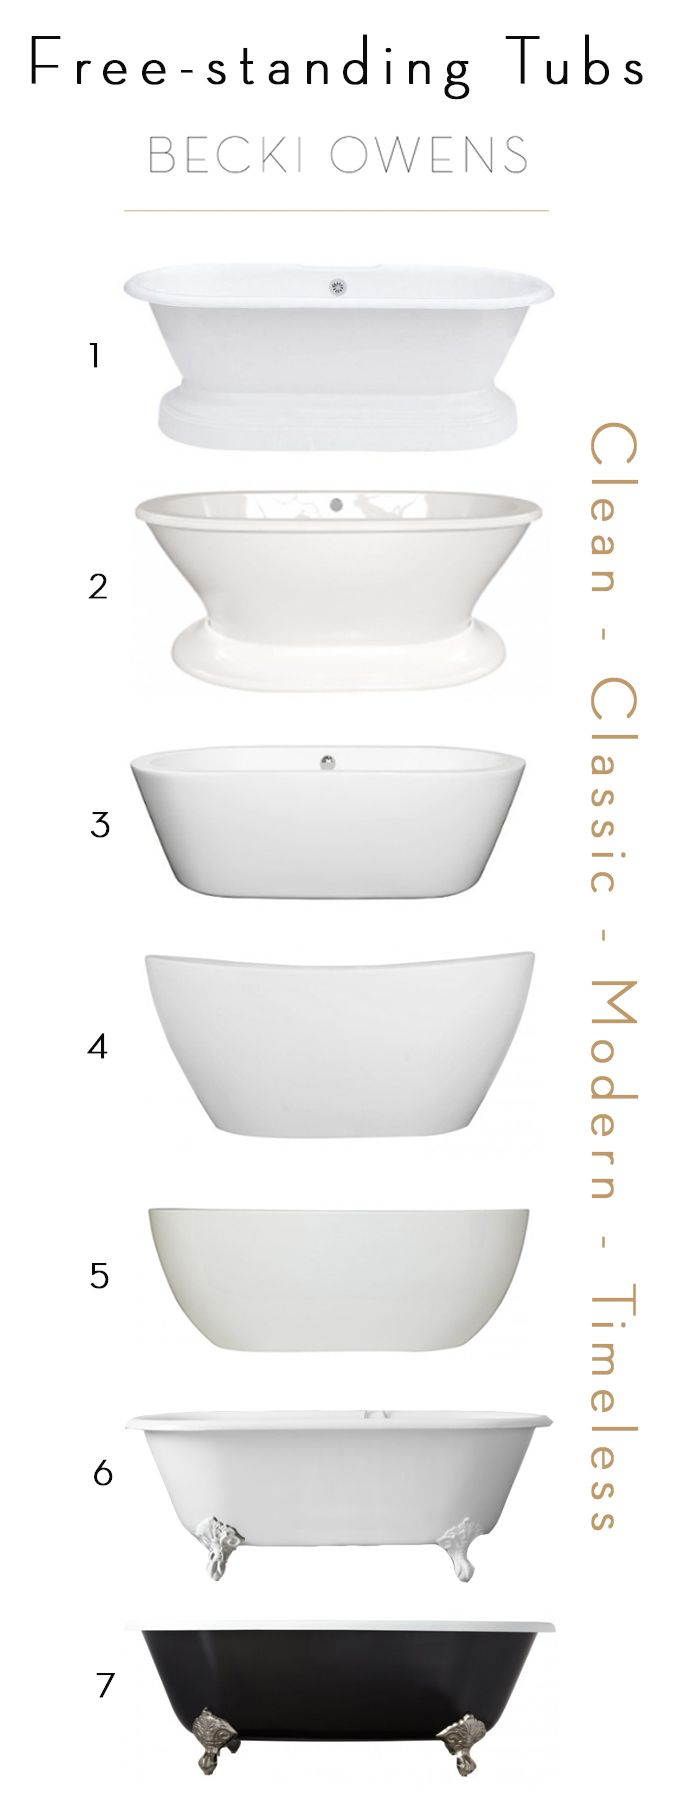 BECKI OWENS- 6 Options for Free-standing Tubs